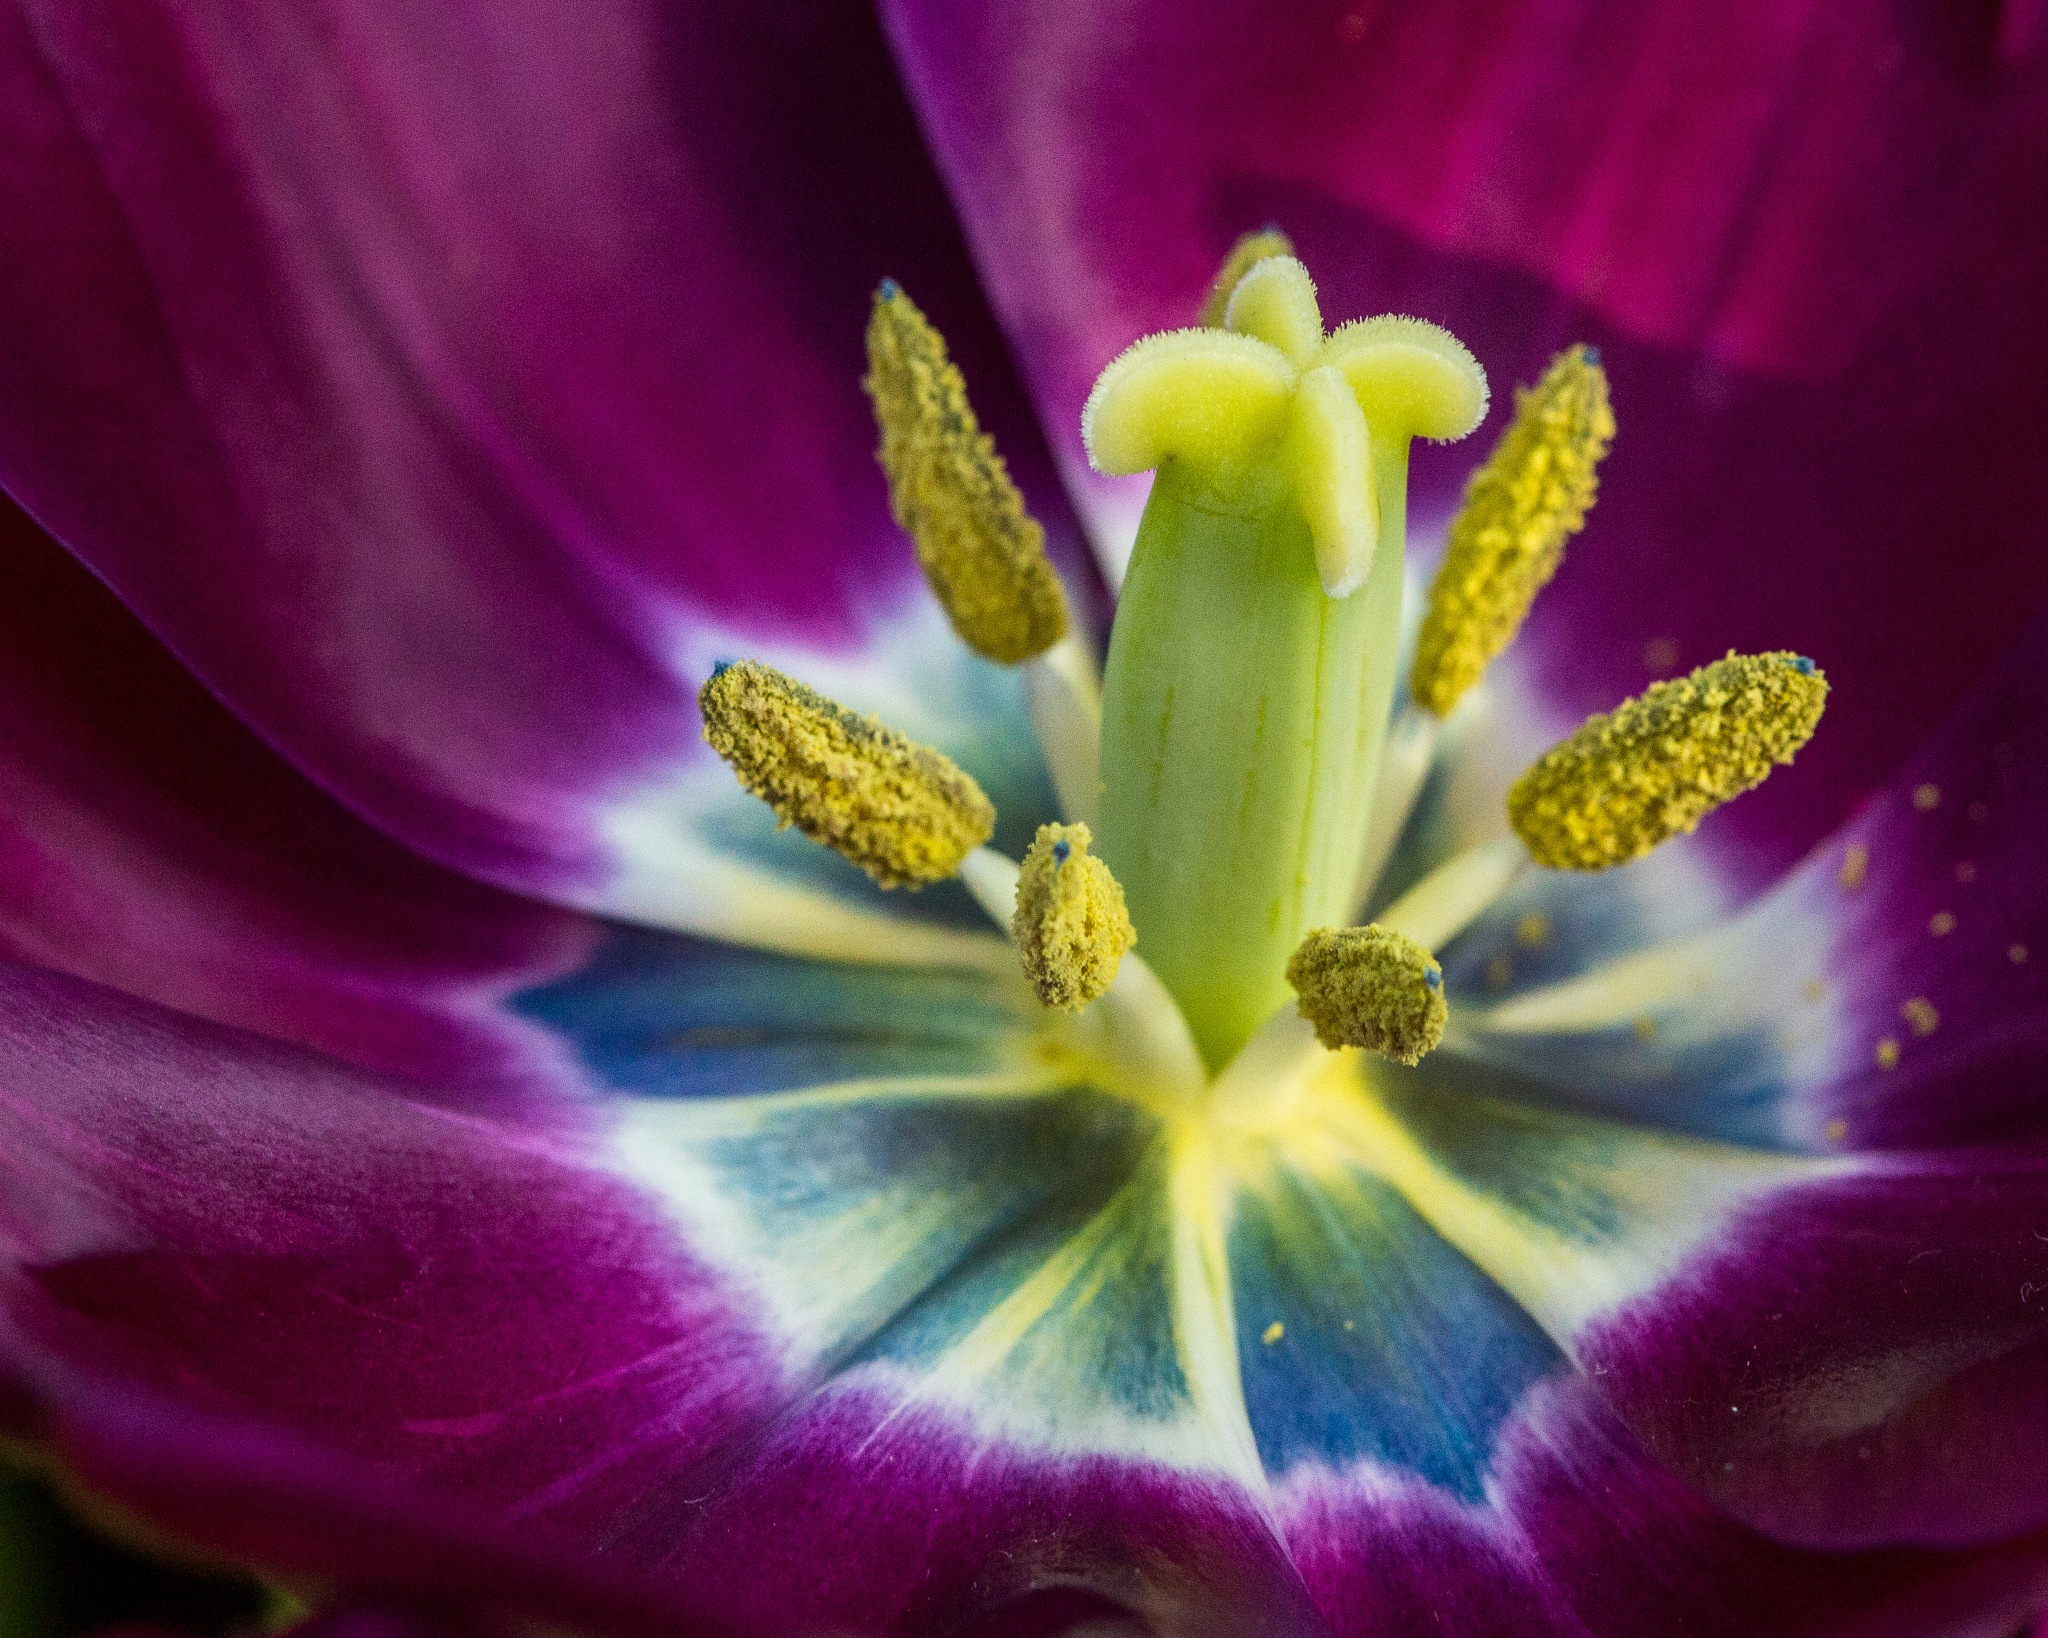 Pretty In Purple and Yellow by John Watson